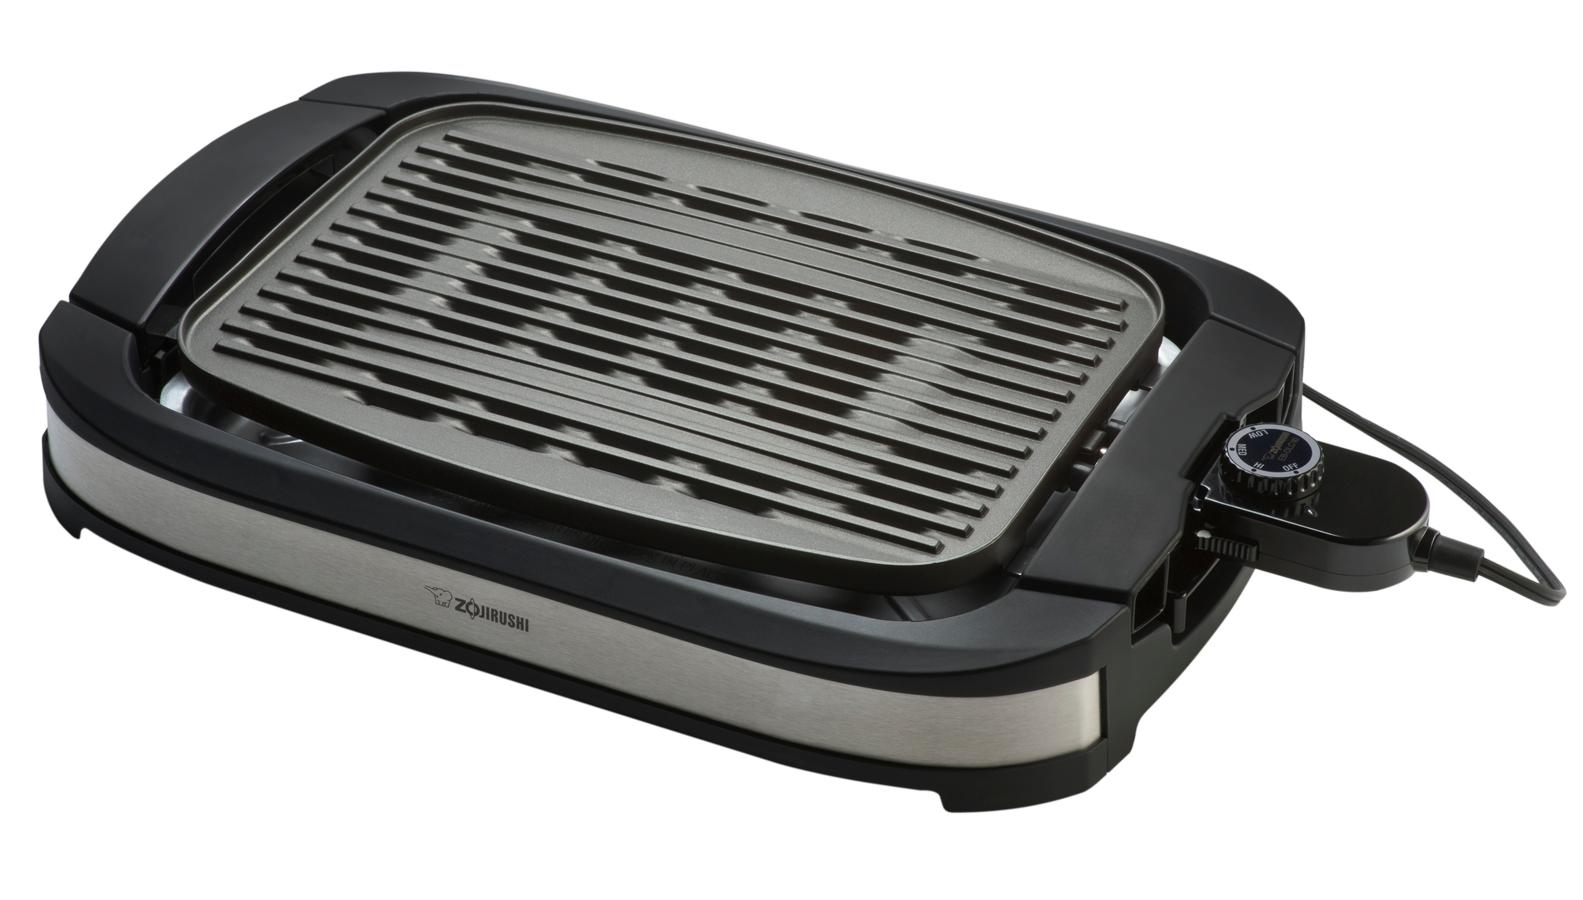 Amazon.com: Zojirushi EB-DLC10 Indoor Electric Grill: Electric ...